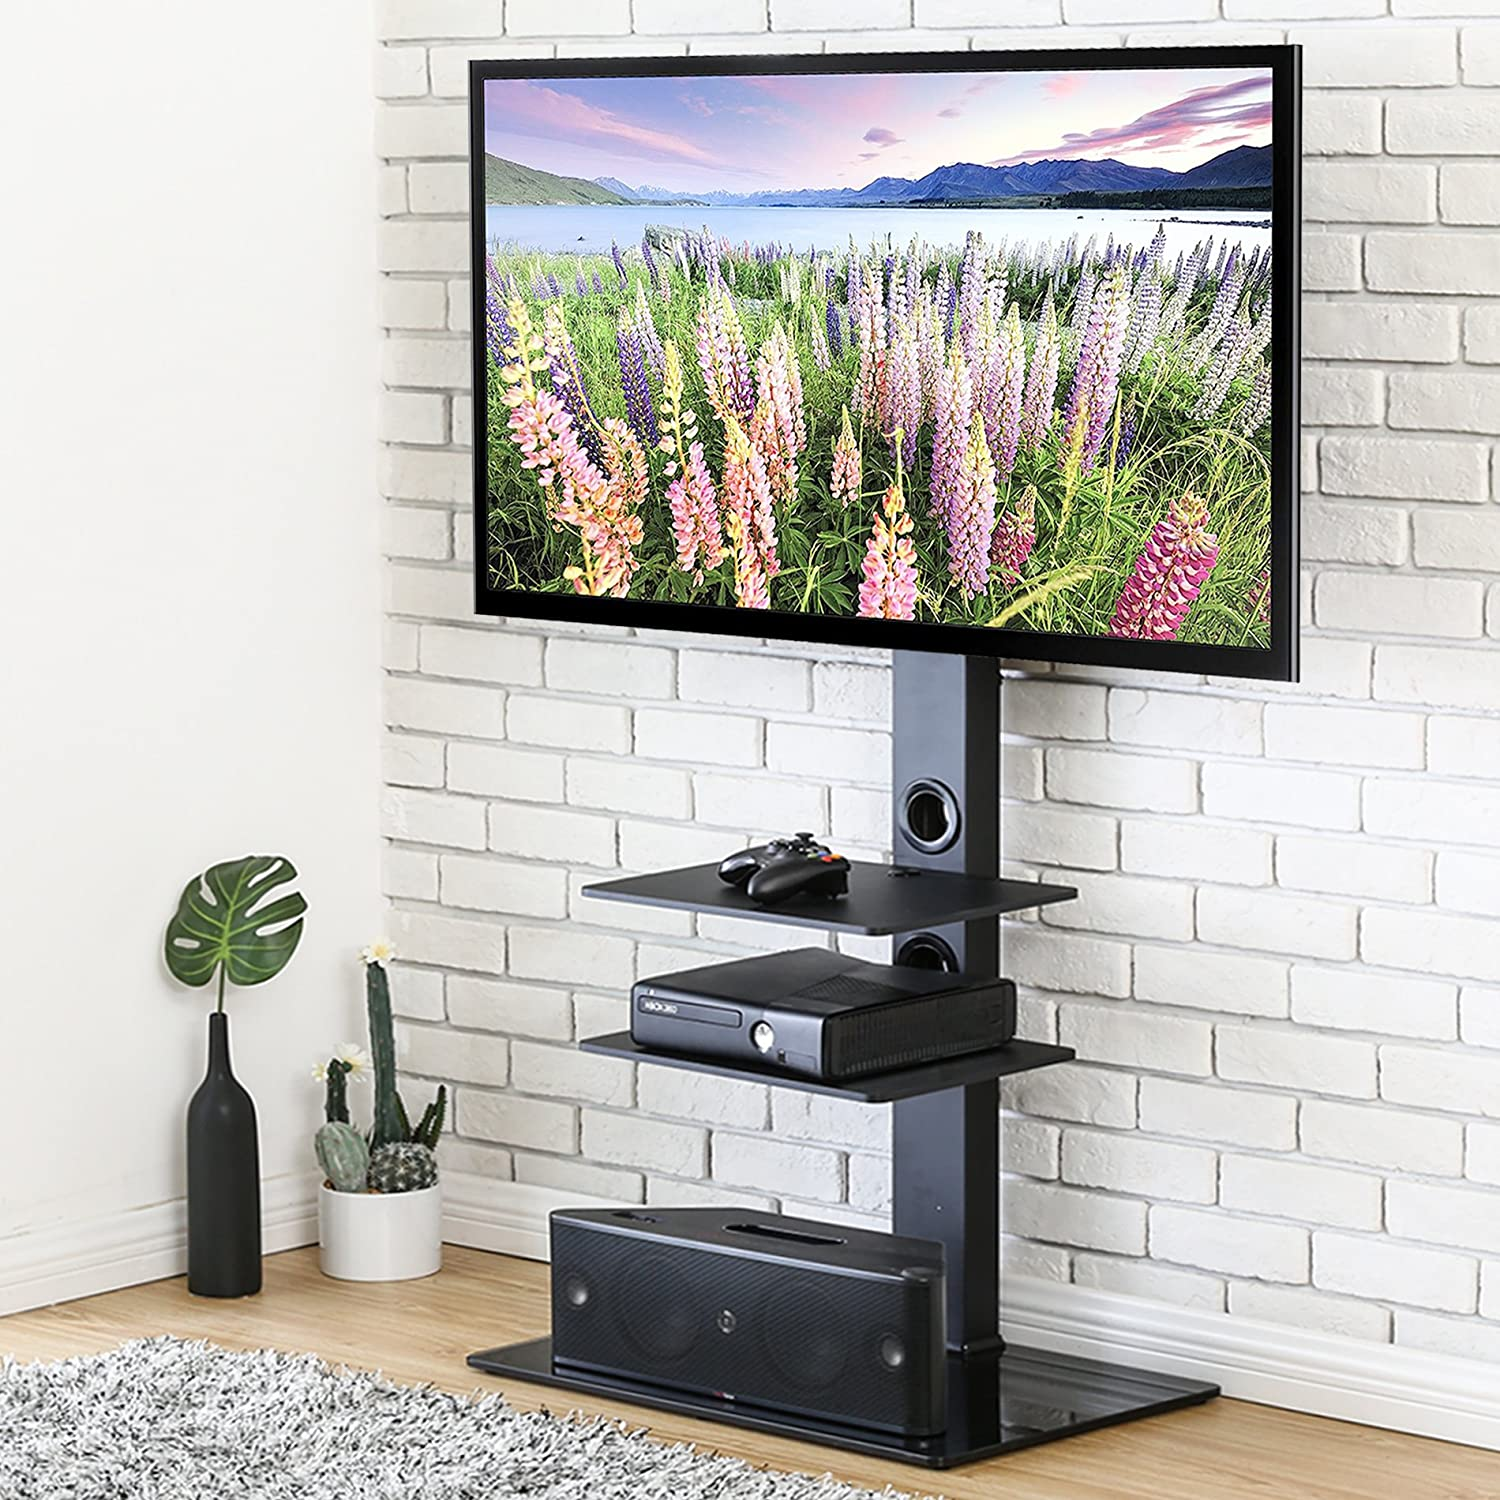 FITUEYES Universal Cantilever Glass TV Stand with Swivel Bracket for 32 to 65 inch LED LCD TV,Black TT207001MB